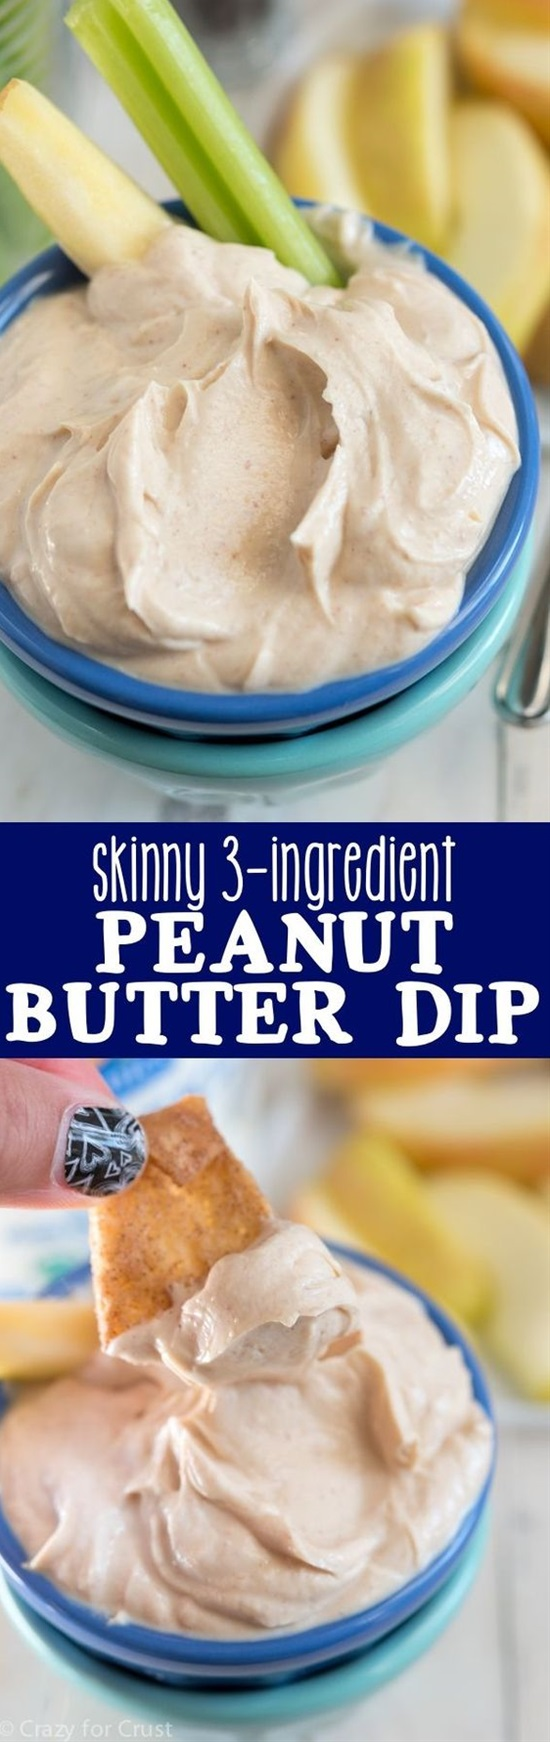 15 Things You Can Do With Peanut Butter